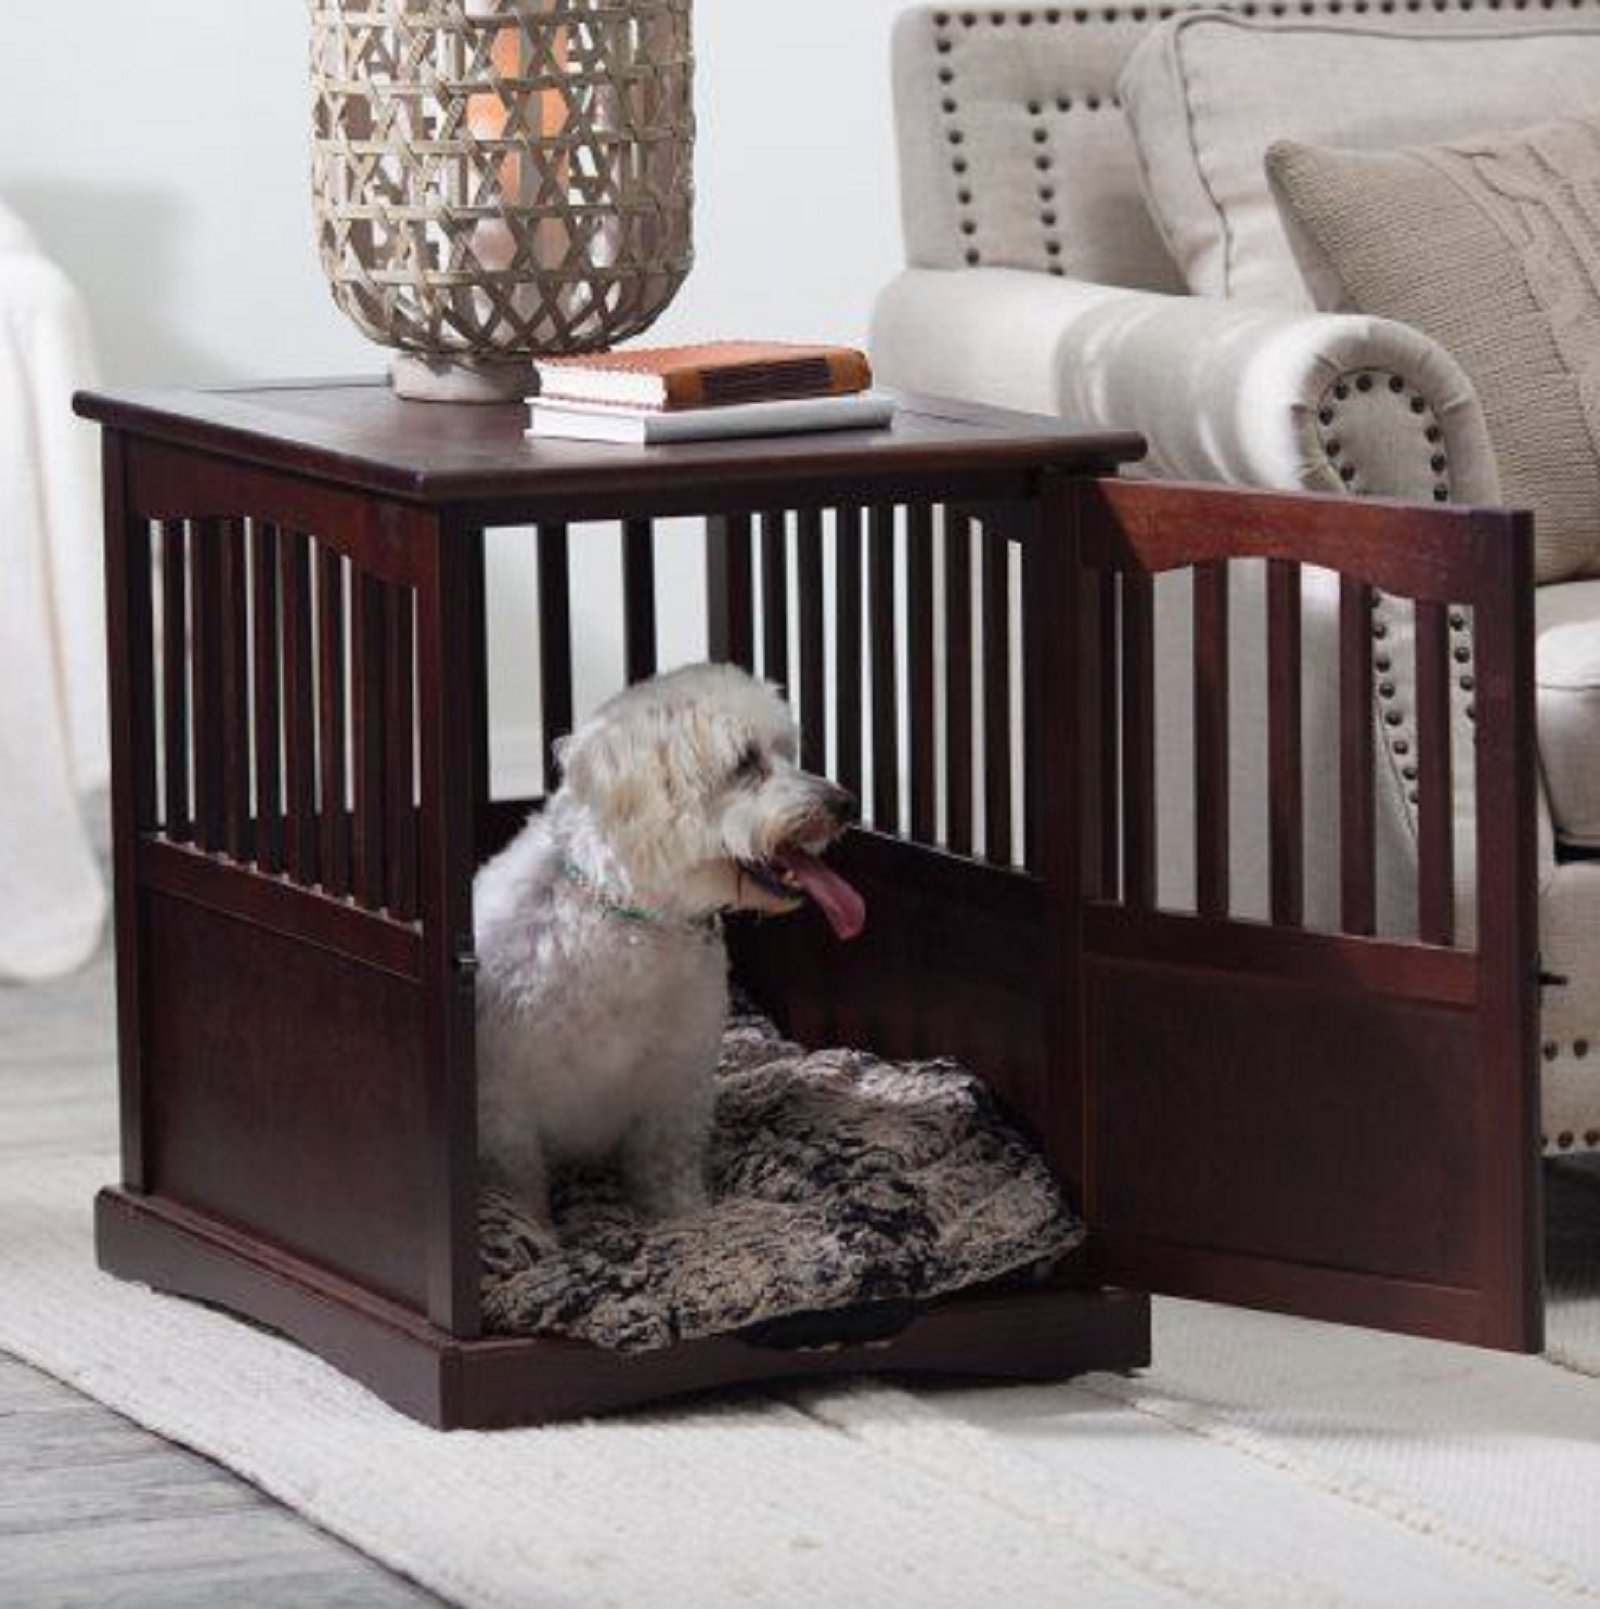 NEW Wooden Pet Crate end table kennel cage furniture dog pen indoor house bed Small by Polarbear's Shop